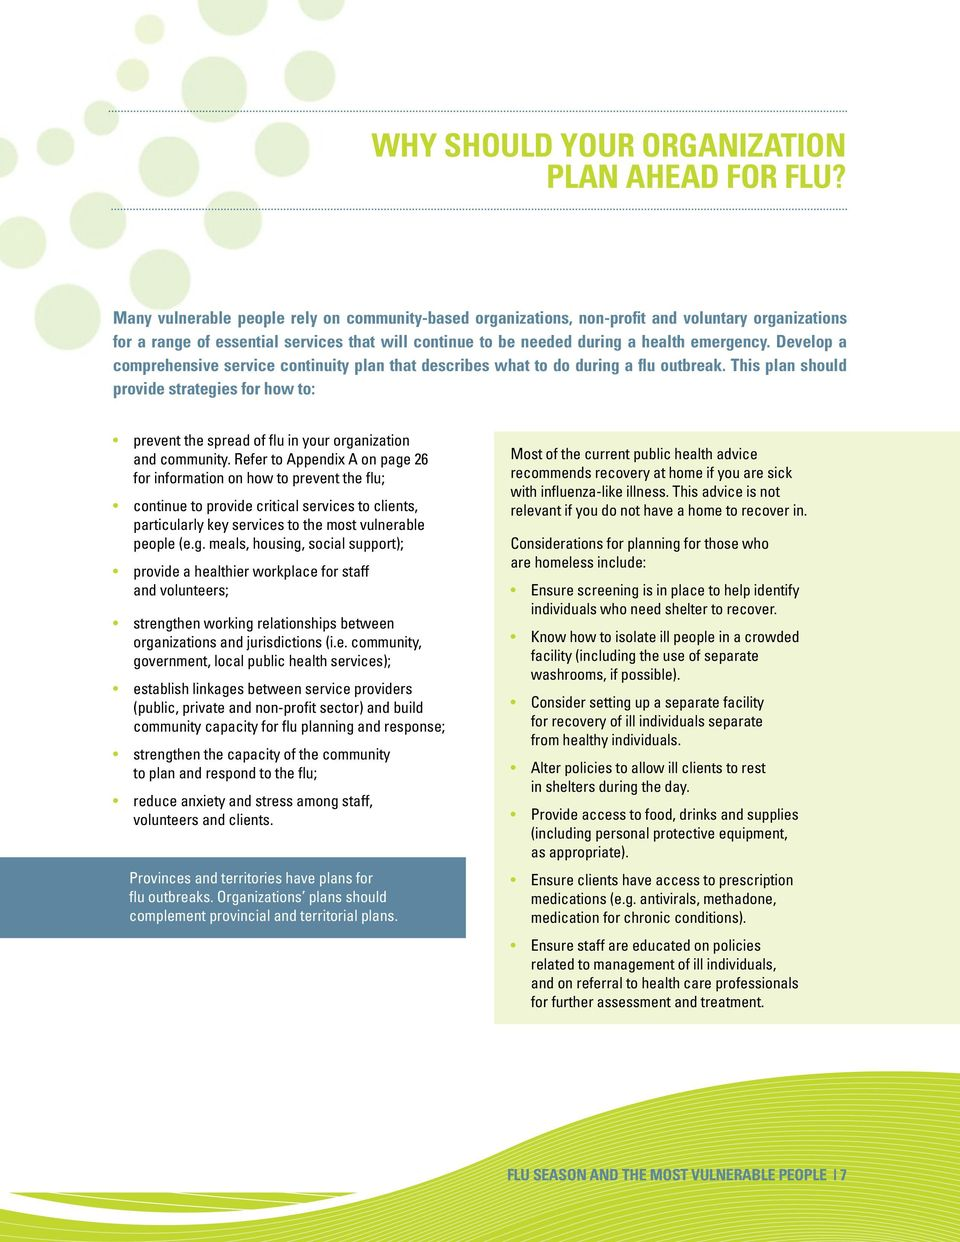 Develop a comprehensive service continuity plan that describes what to do during a flu outbreak.